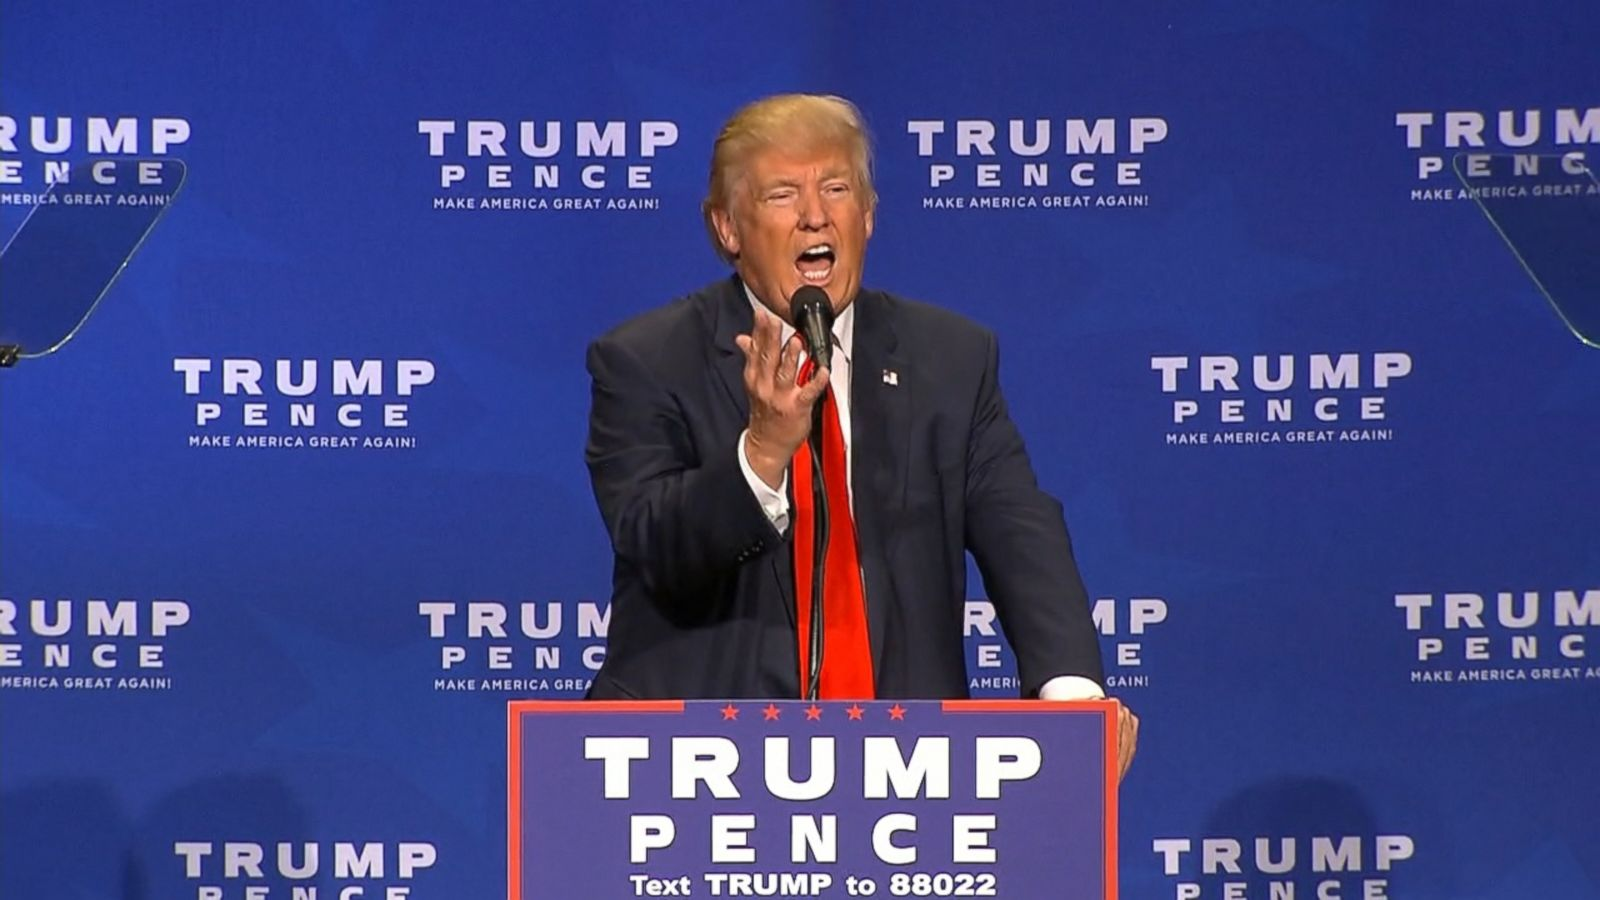 VIDEO: Donald Trump raised some eyebrows in the Silver State Wednesday night when he told Nevadans how to pronounce their states name -- differently than they do.